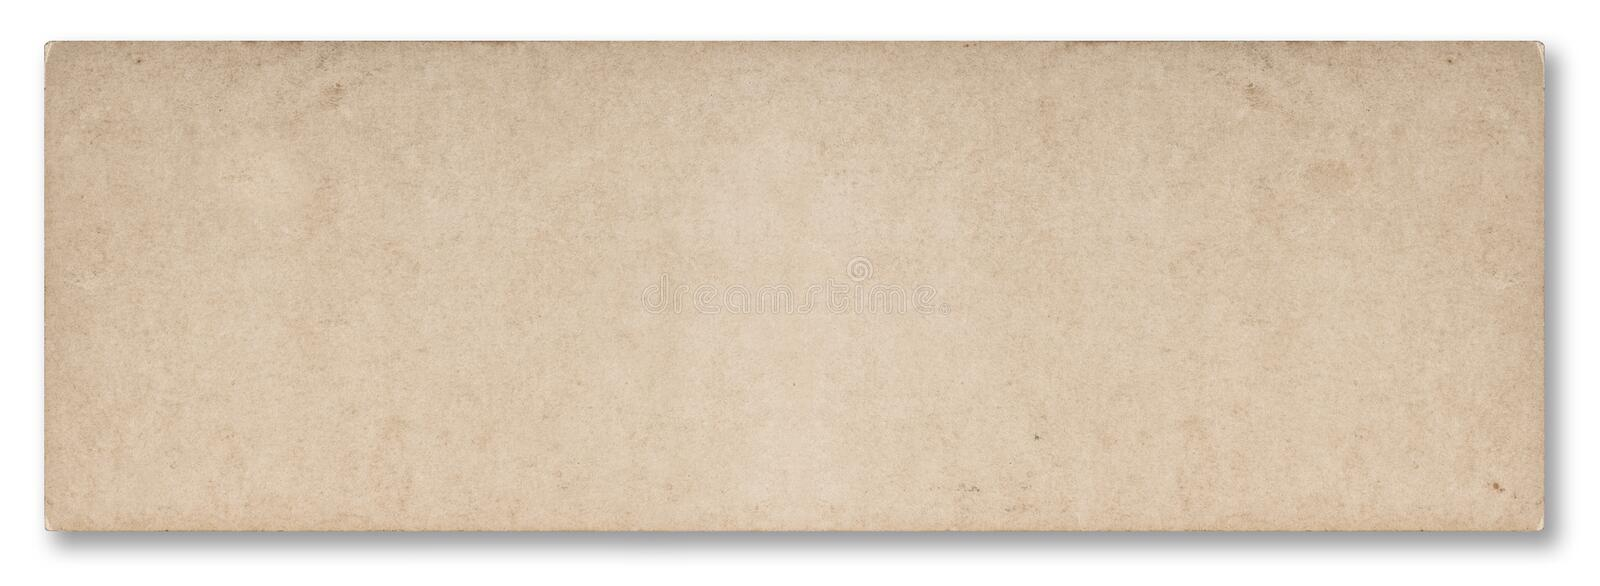 Used news paper texture isolated white background royalty free stock photo